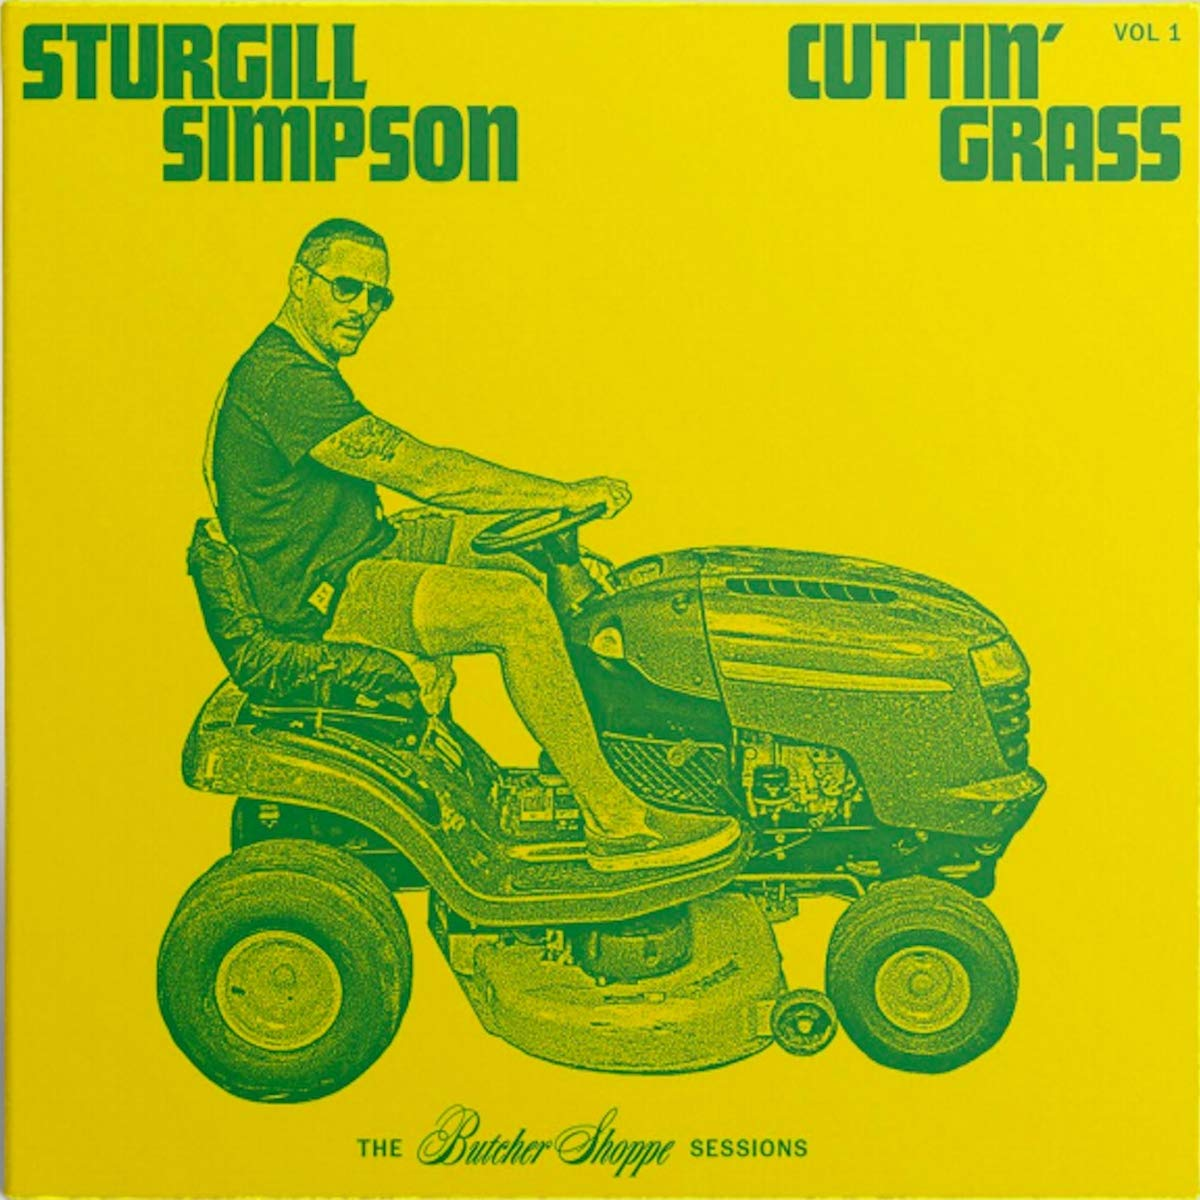 Cuttun' Grass Vol 1 The Butcher Shoppe Sessions, 2020